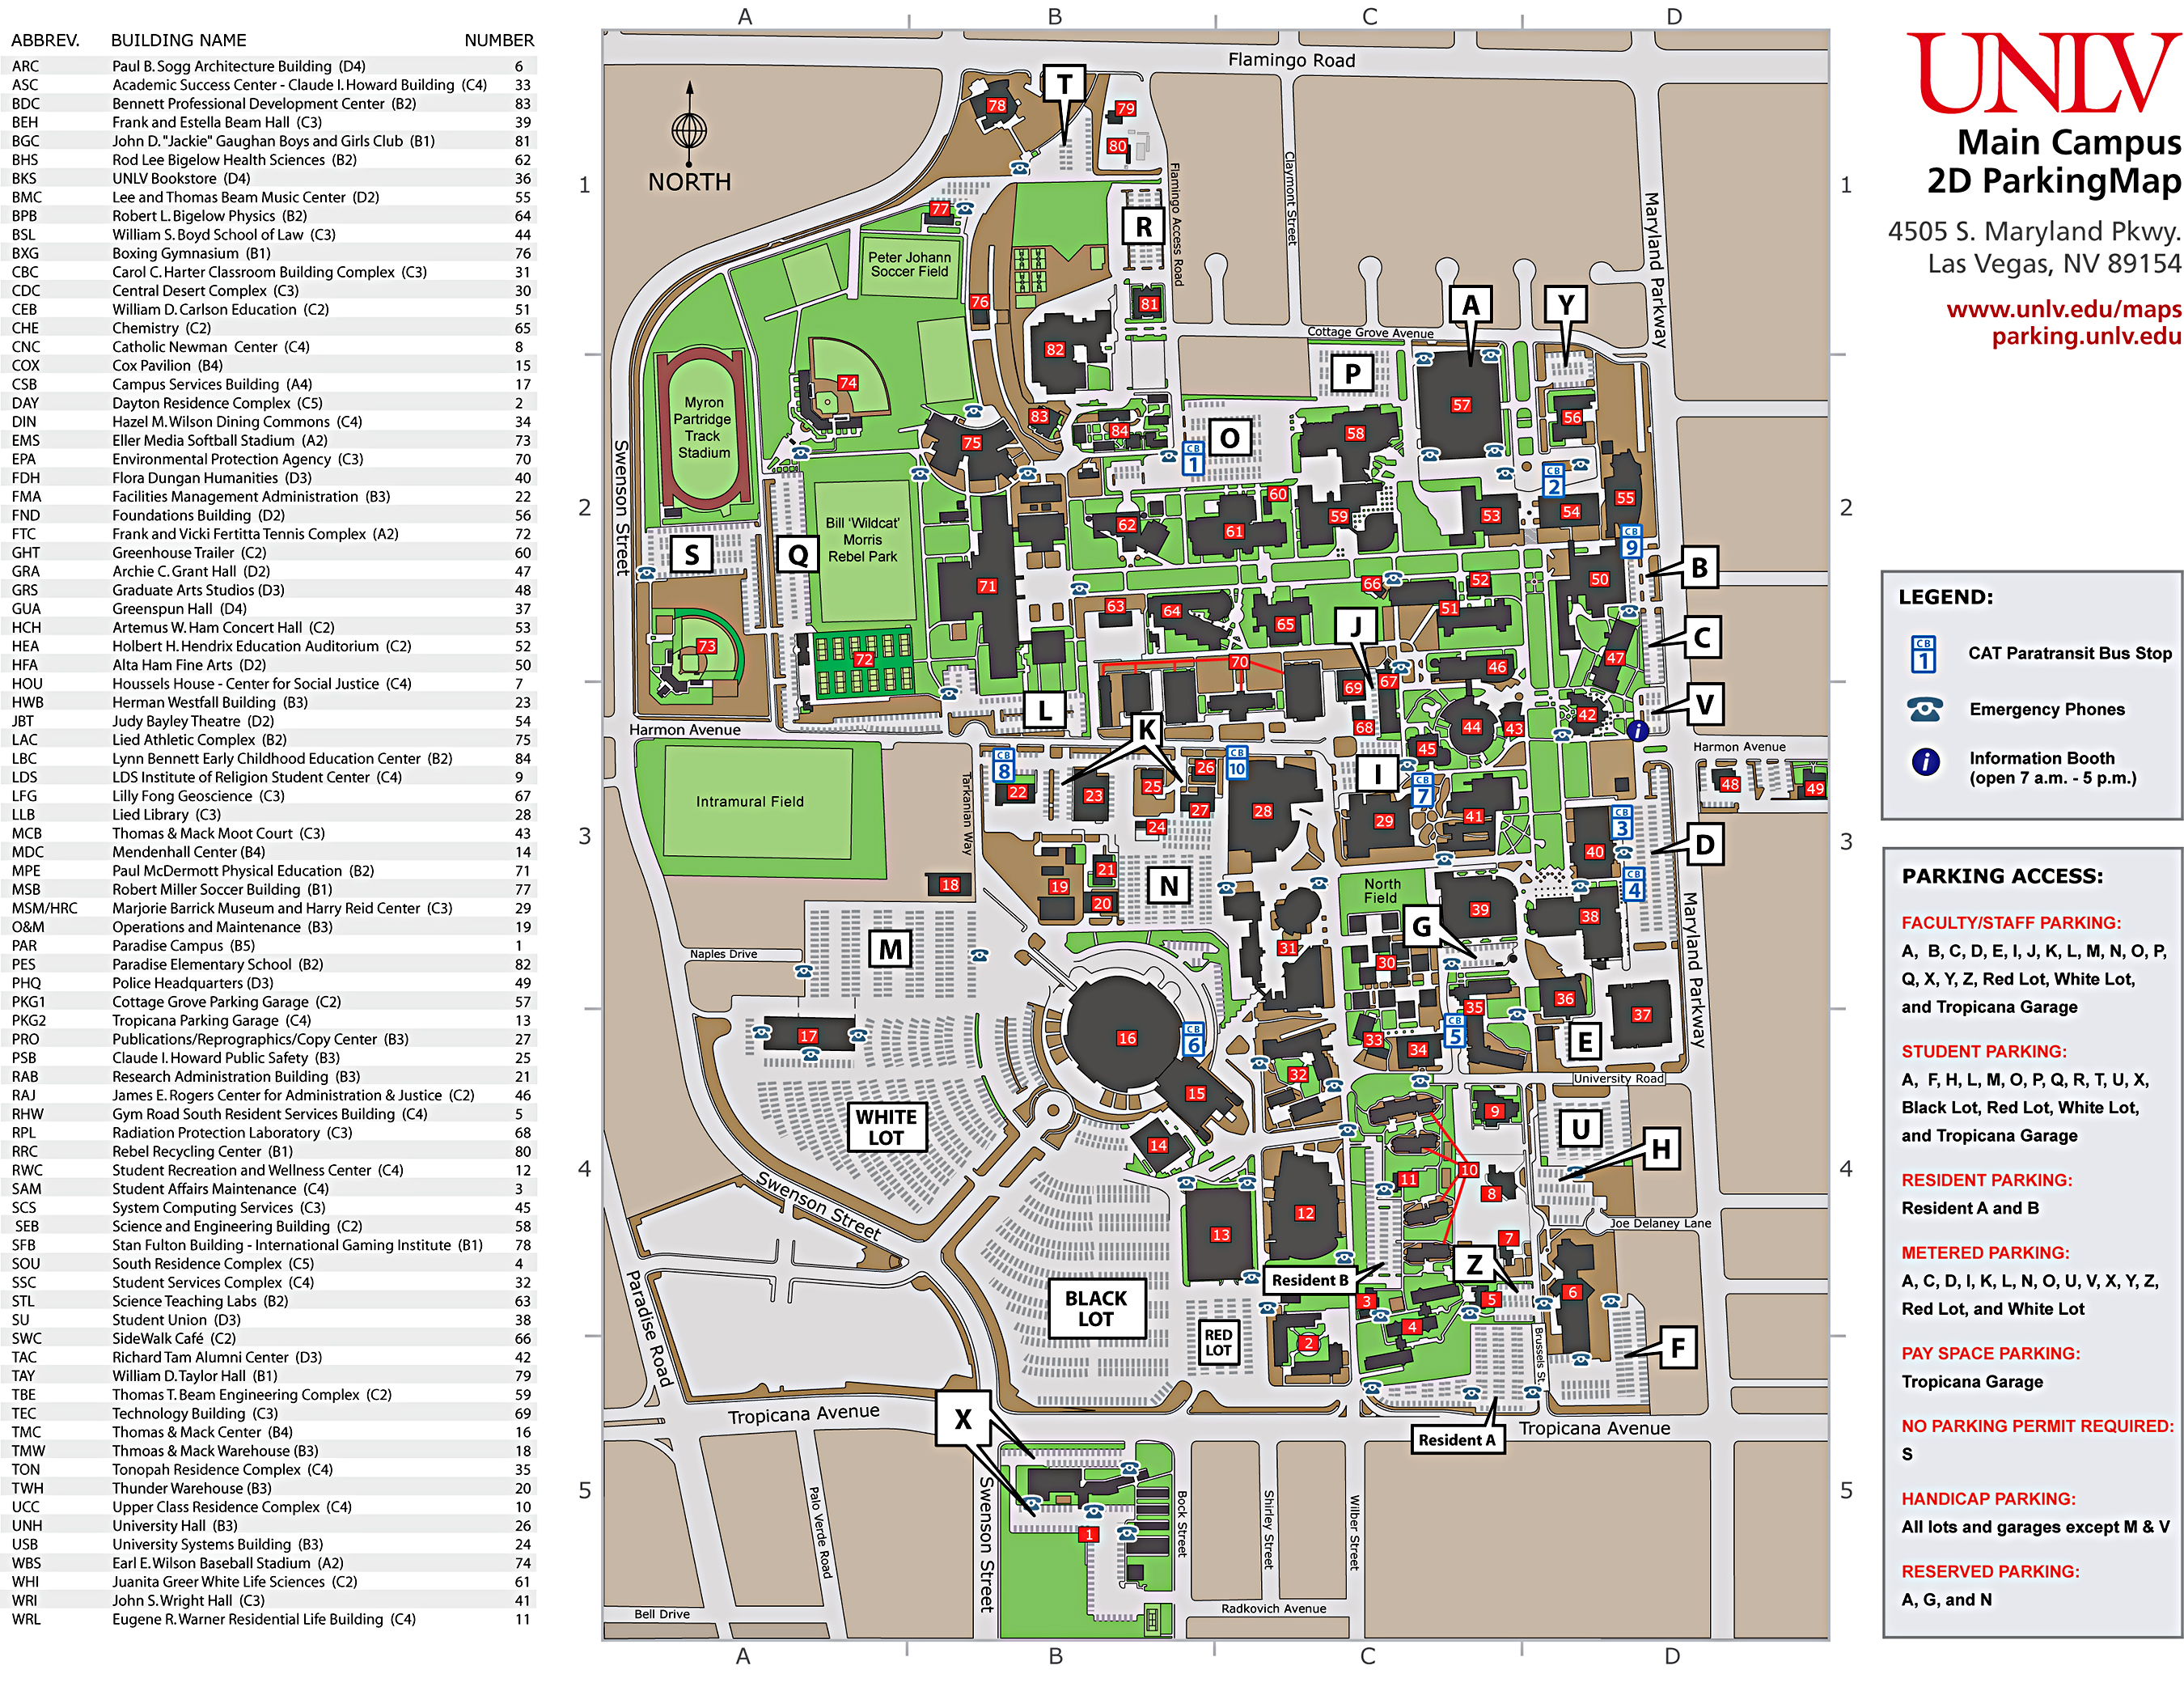 unr parking map with Travel13 on Travel13 besides Seating Charts furthermore Packtransit likewise Unr 2015 Calendar further Unr Map.